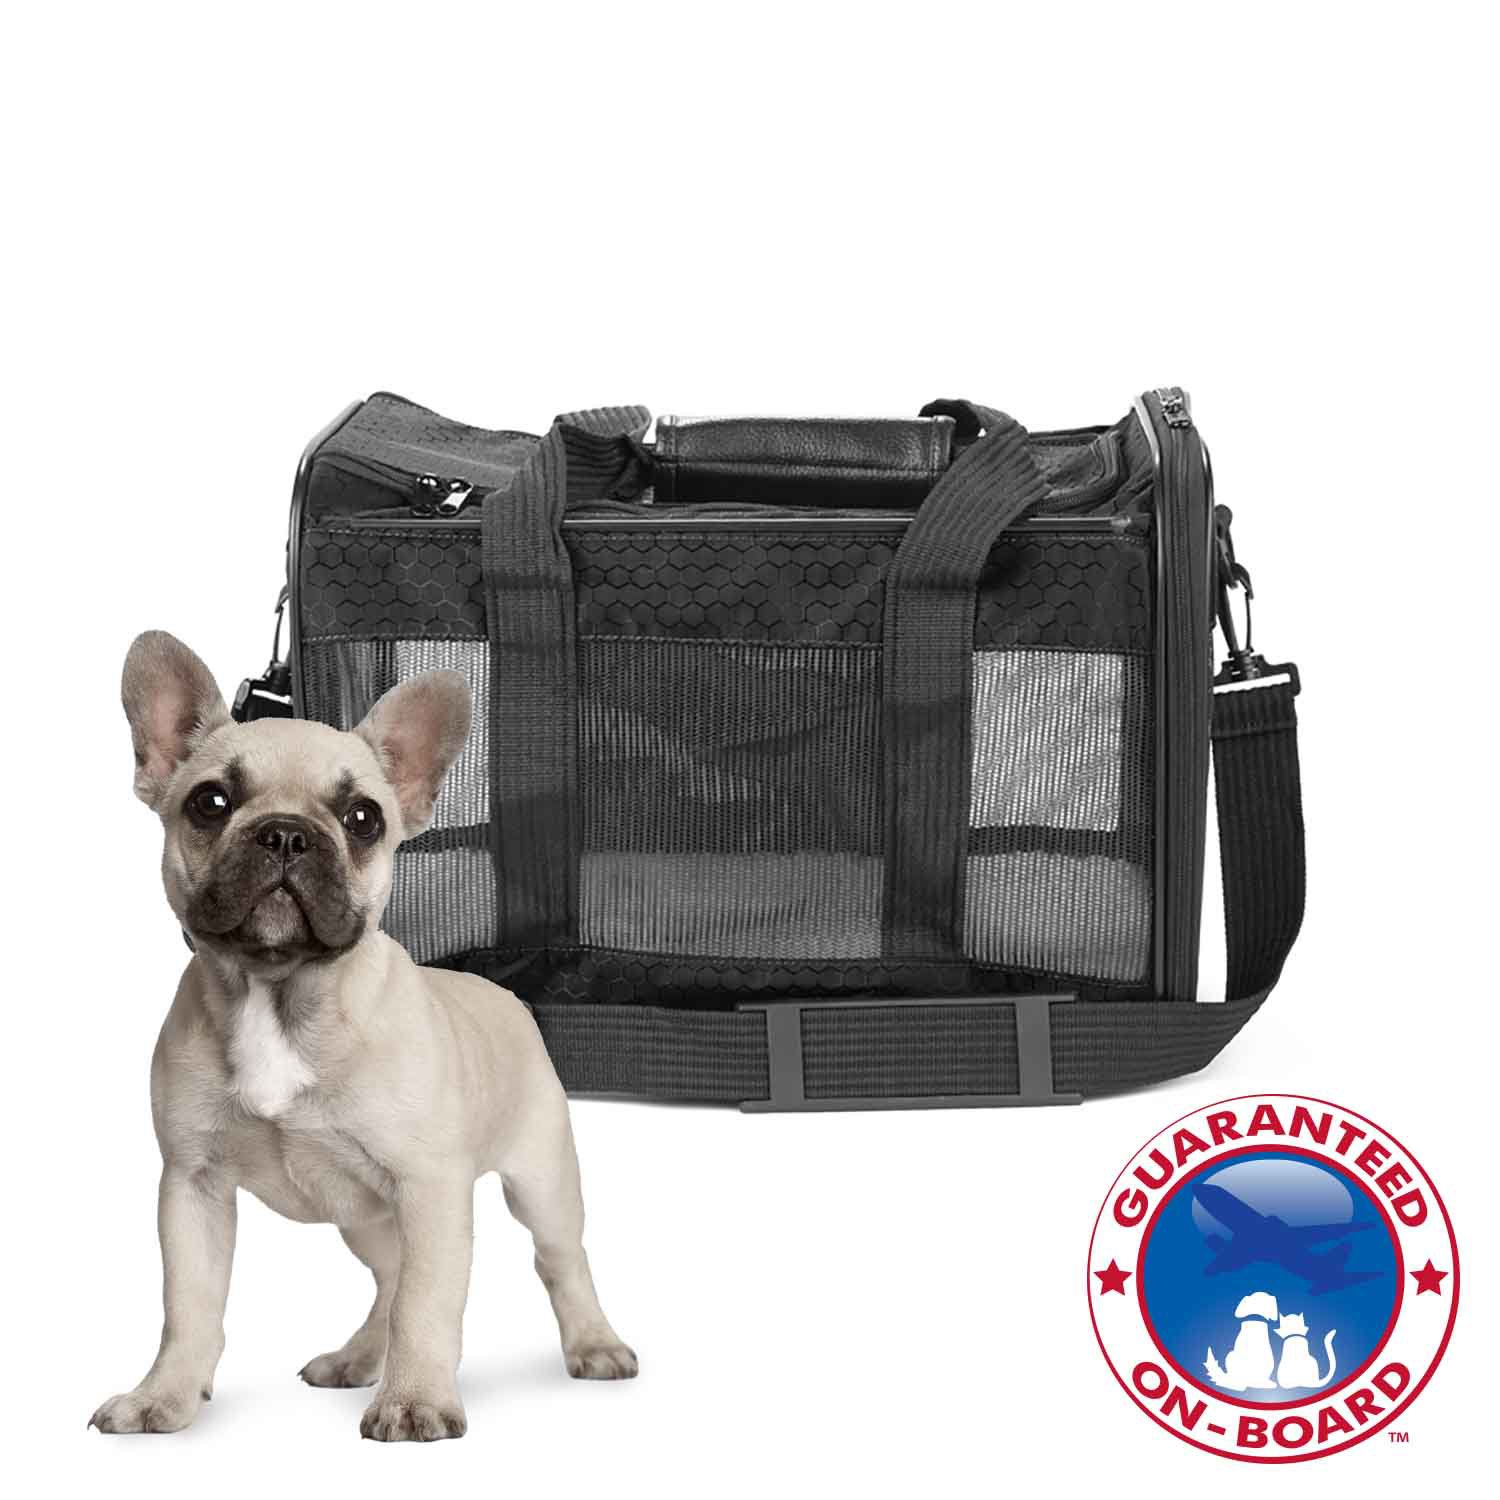 Petmate's Two Door Top Load kennel keeps pets comfortable and secure, giving pet parents peace of mind. The Petmate Two Door Top Load kennel features a unique top-loading door that allows pet parents to easily place and remove pets from the carrier with both hands.